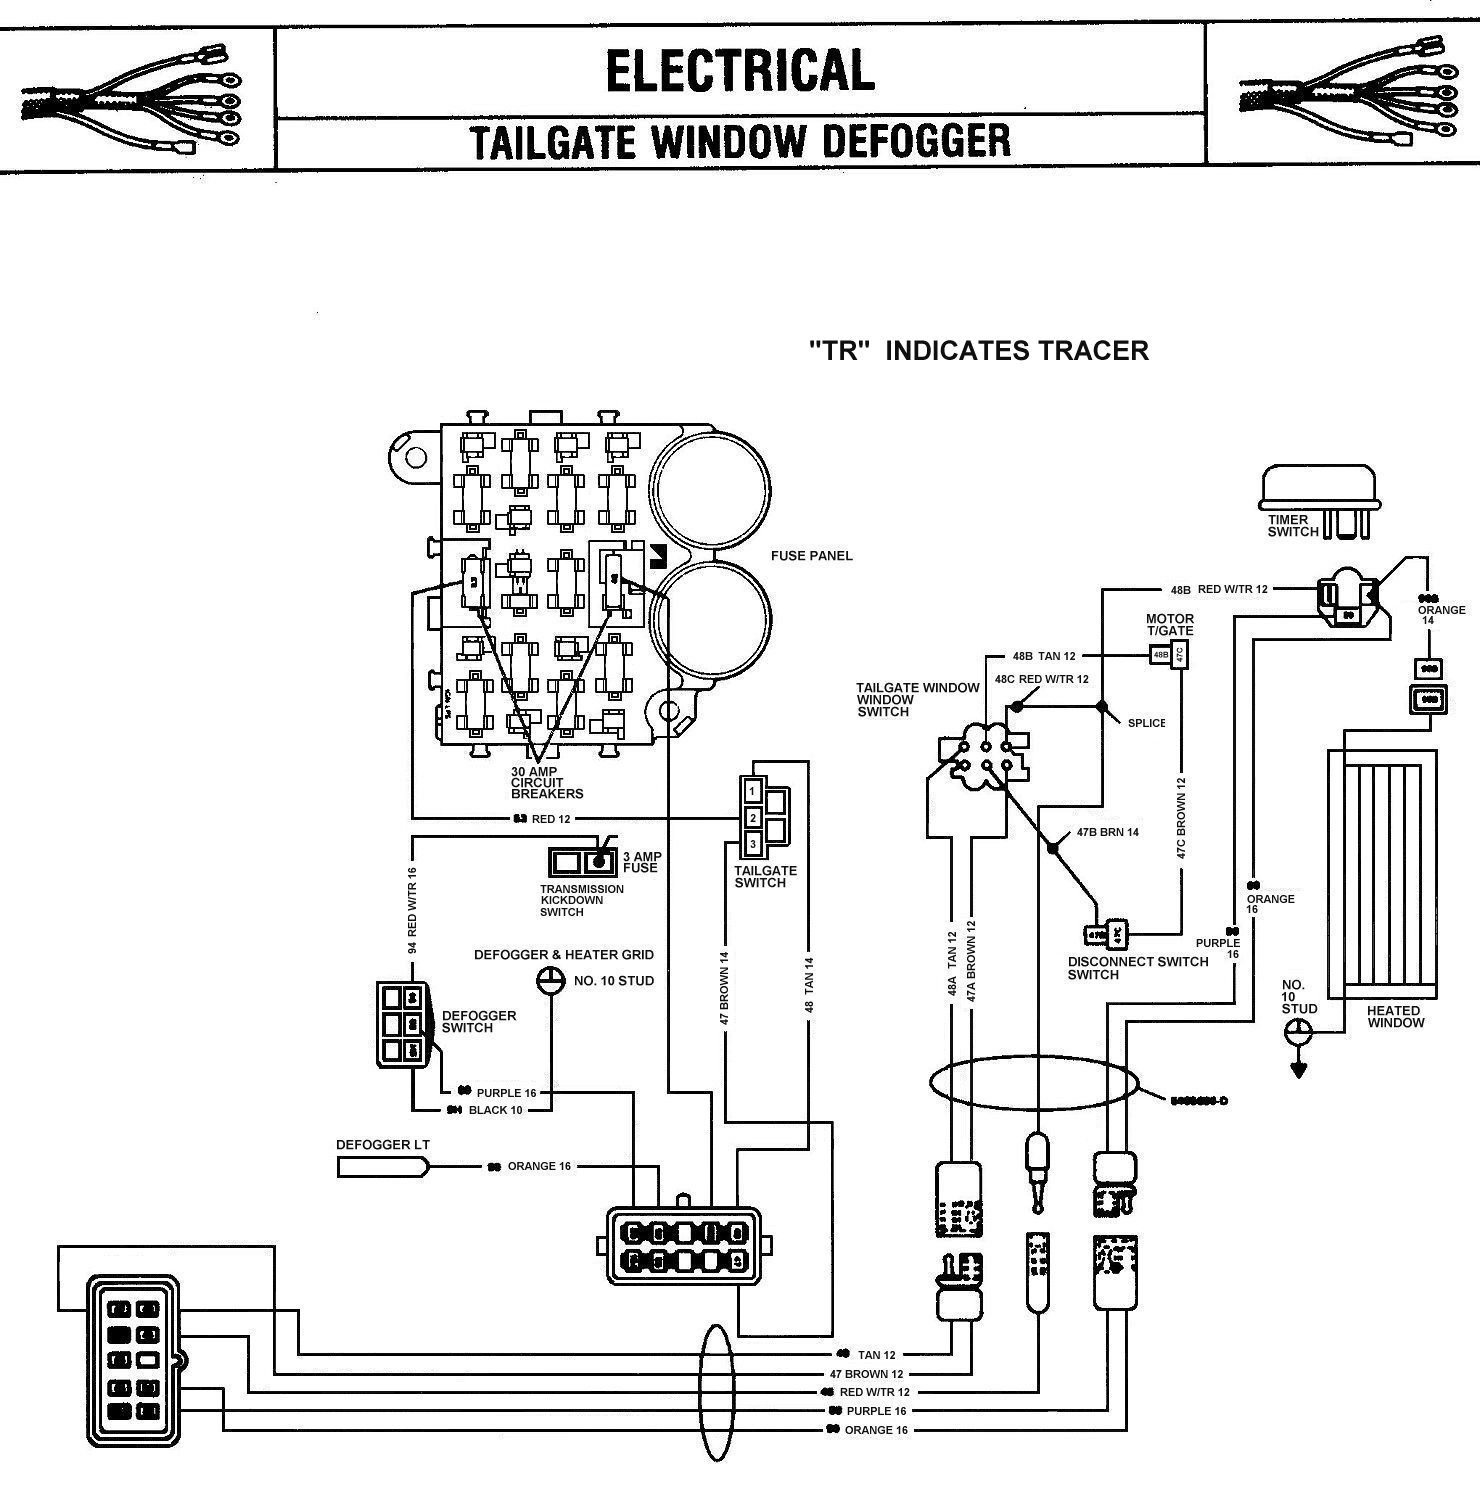 Chevy Monte Carlo Fuse Box Diagram Wiring Library 01 Truck 82 Simple Rh David Huggett Co Uk 84